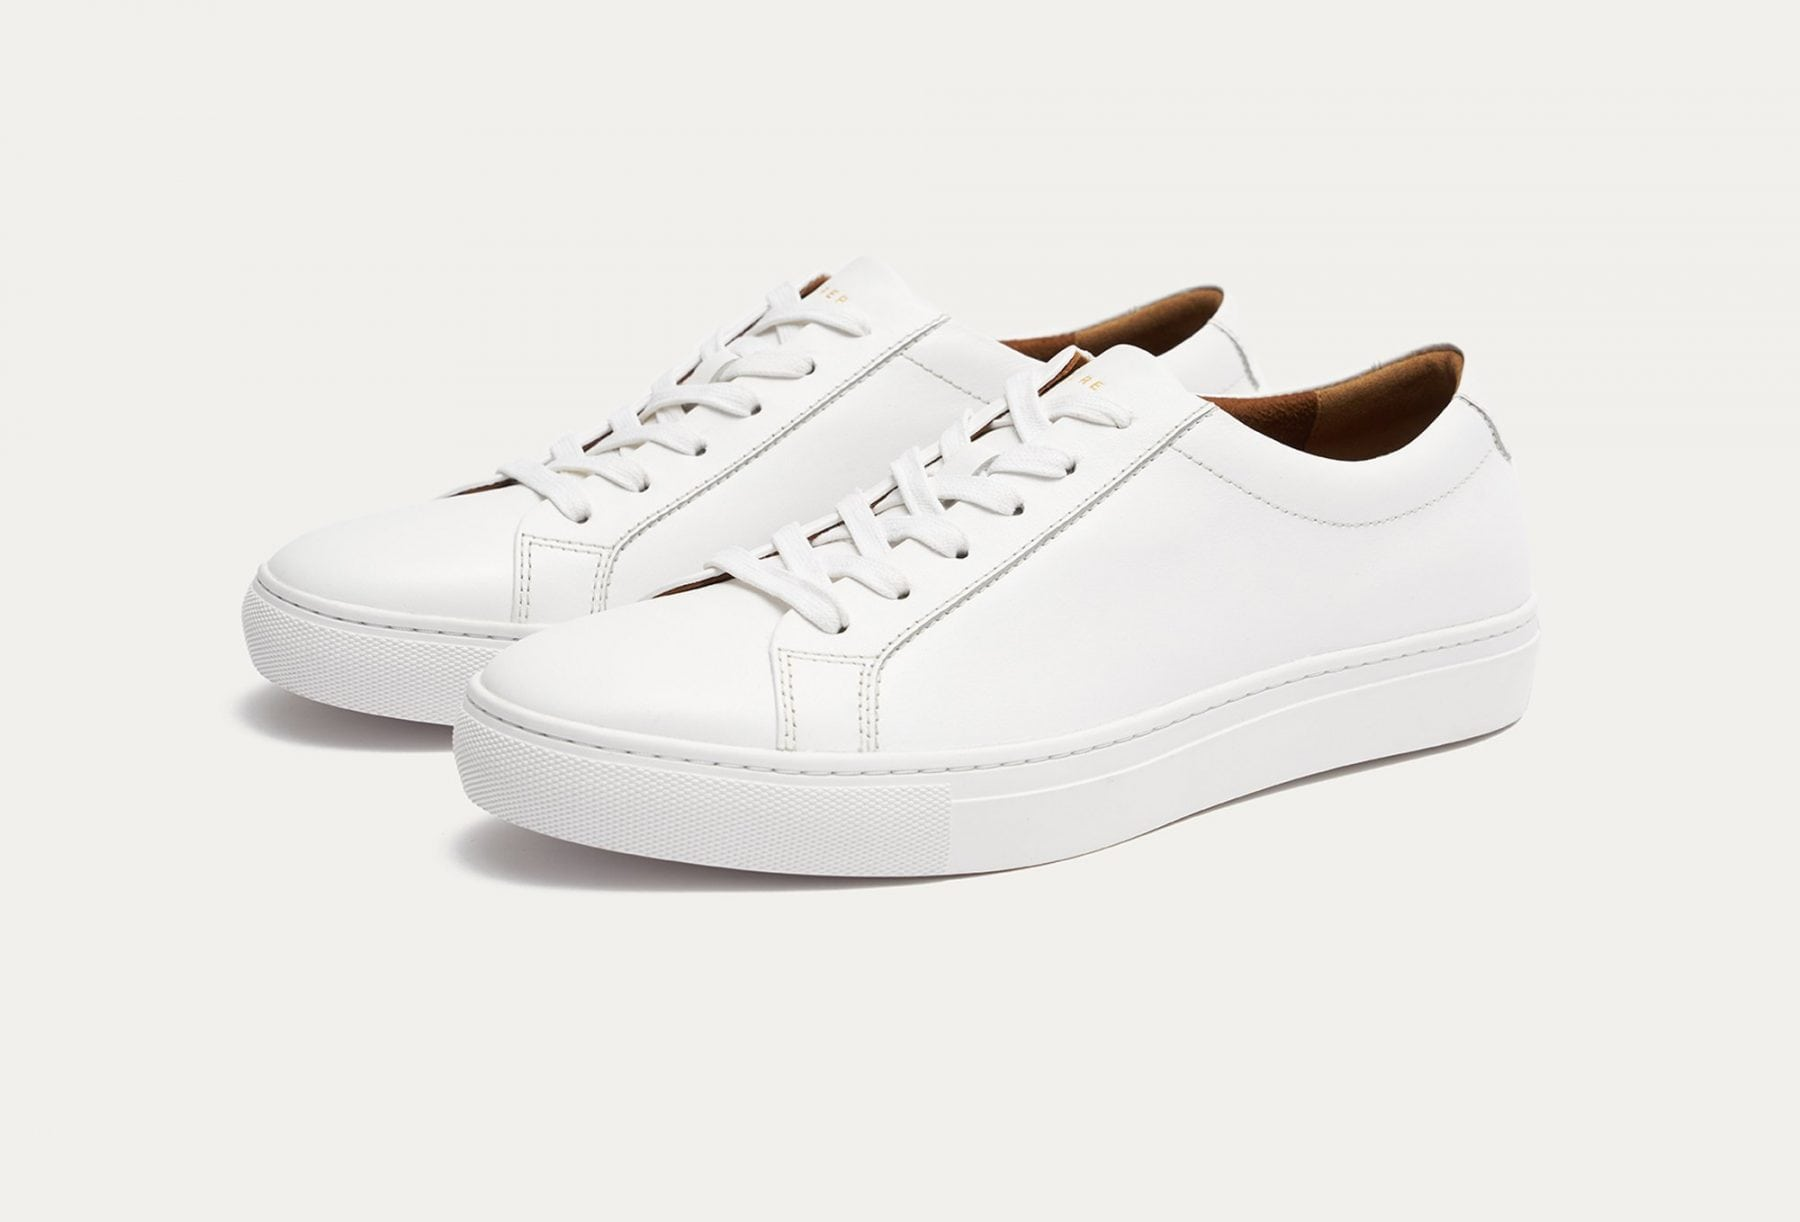 10 best sneakers to wear with a suit